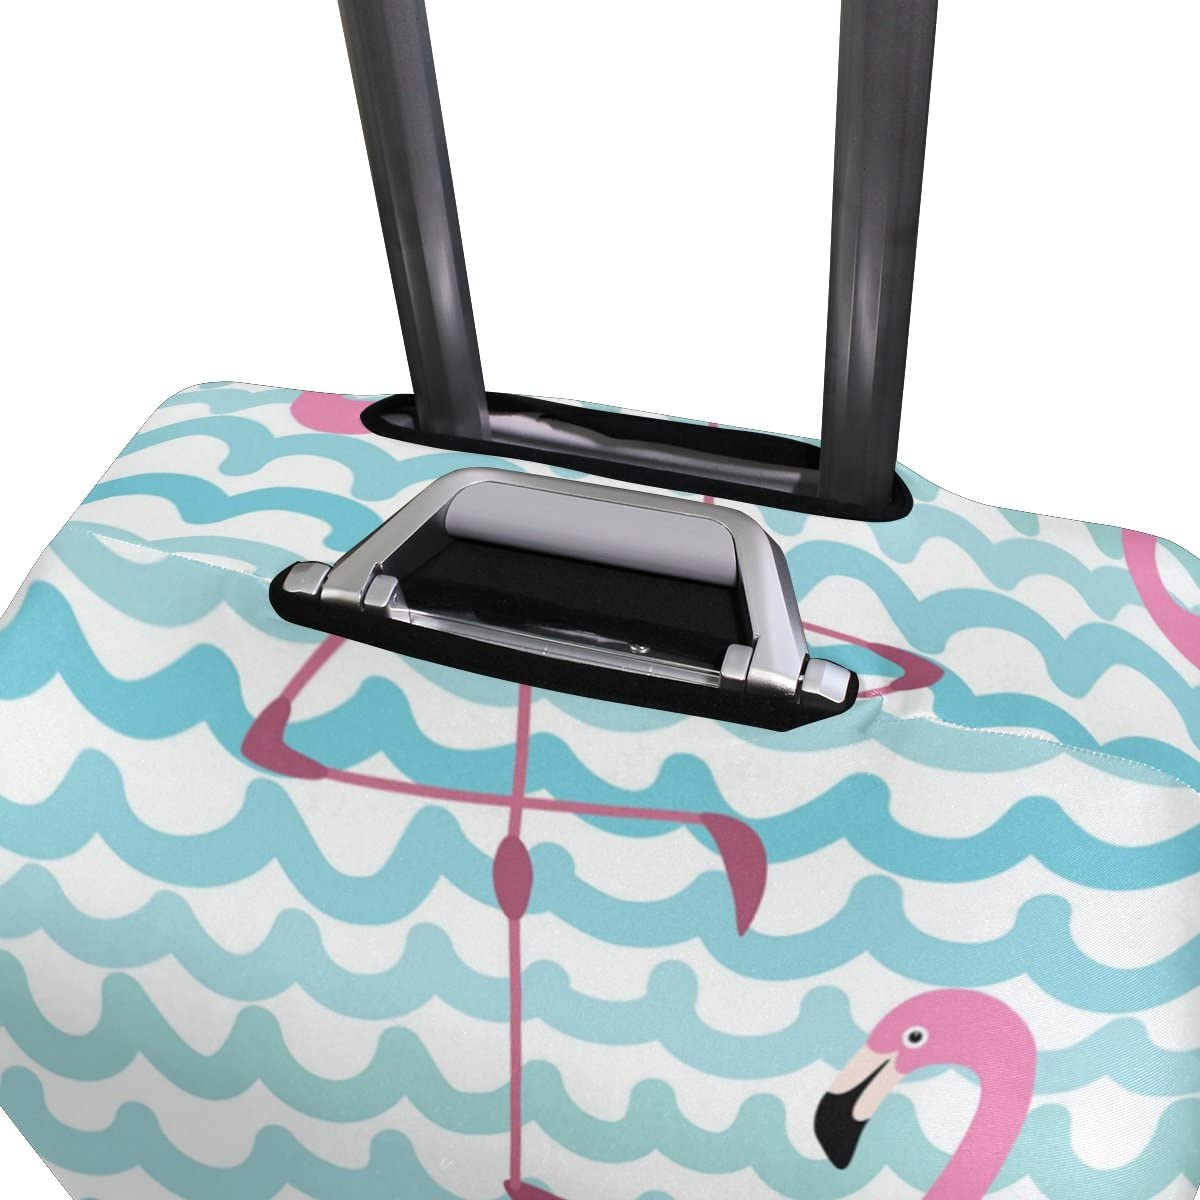 OREZI Luggage Protector Pink Flamingos Travel Luggage Elastic Cover Suitcase Washable and Durable Anti-Scratch Stretchy Case Cover Fits 18-32 Inches